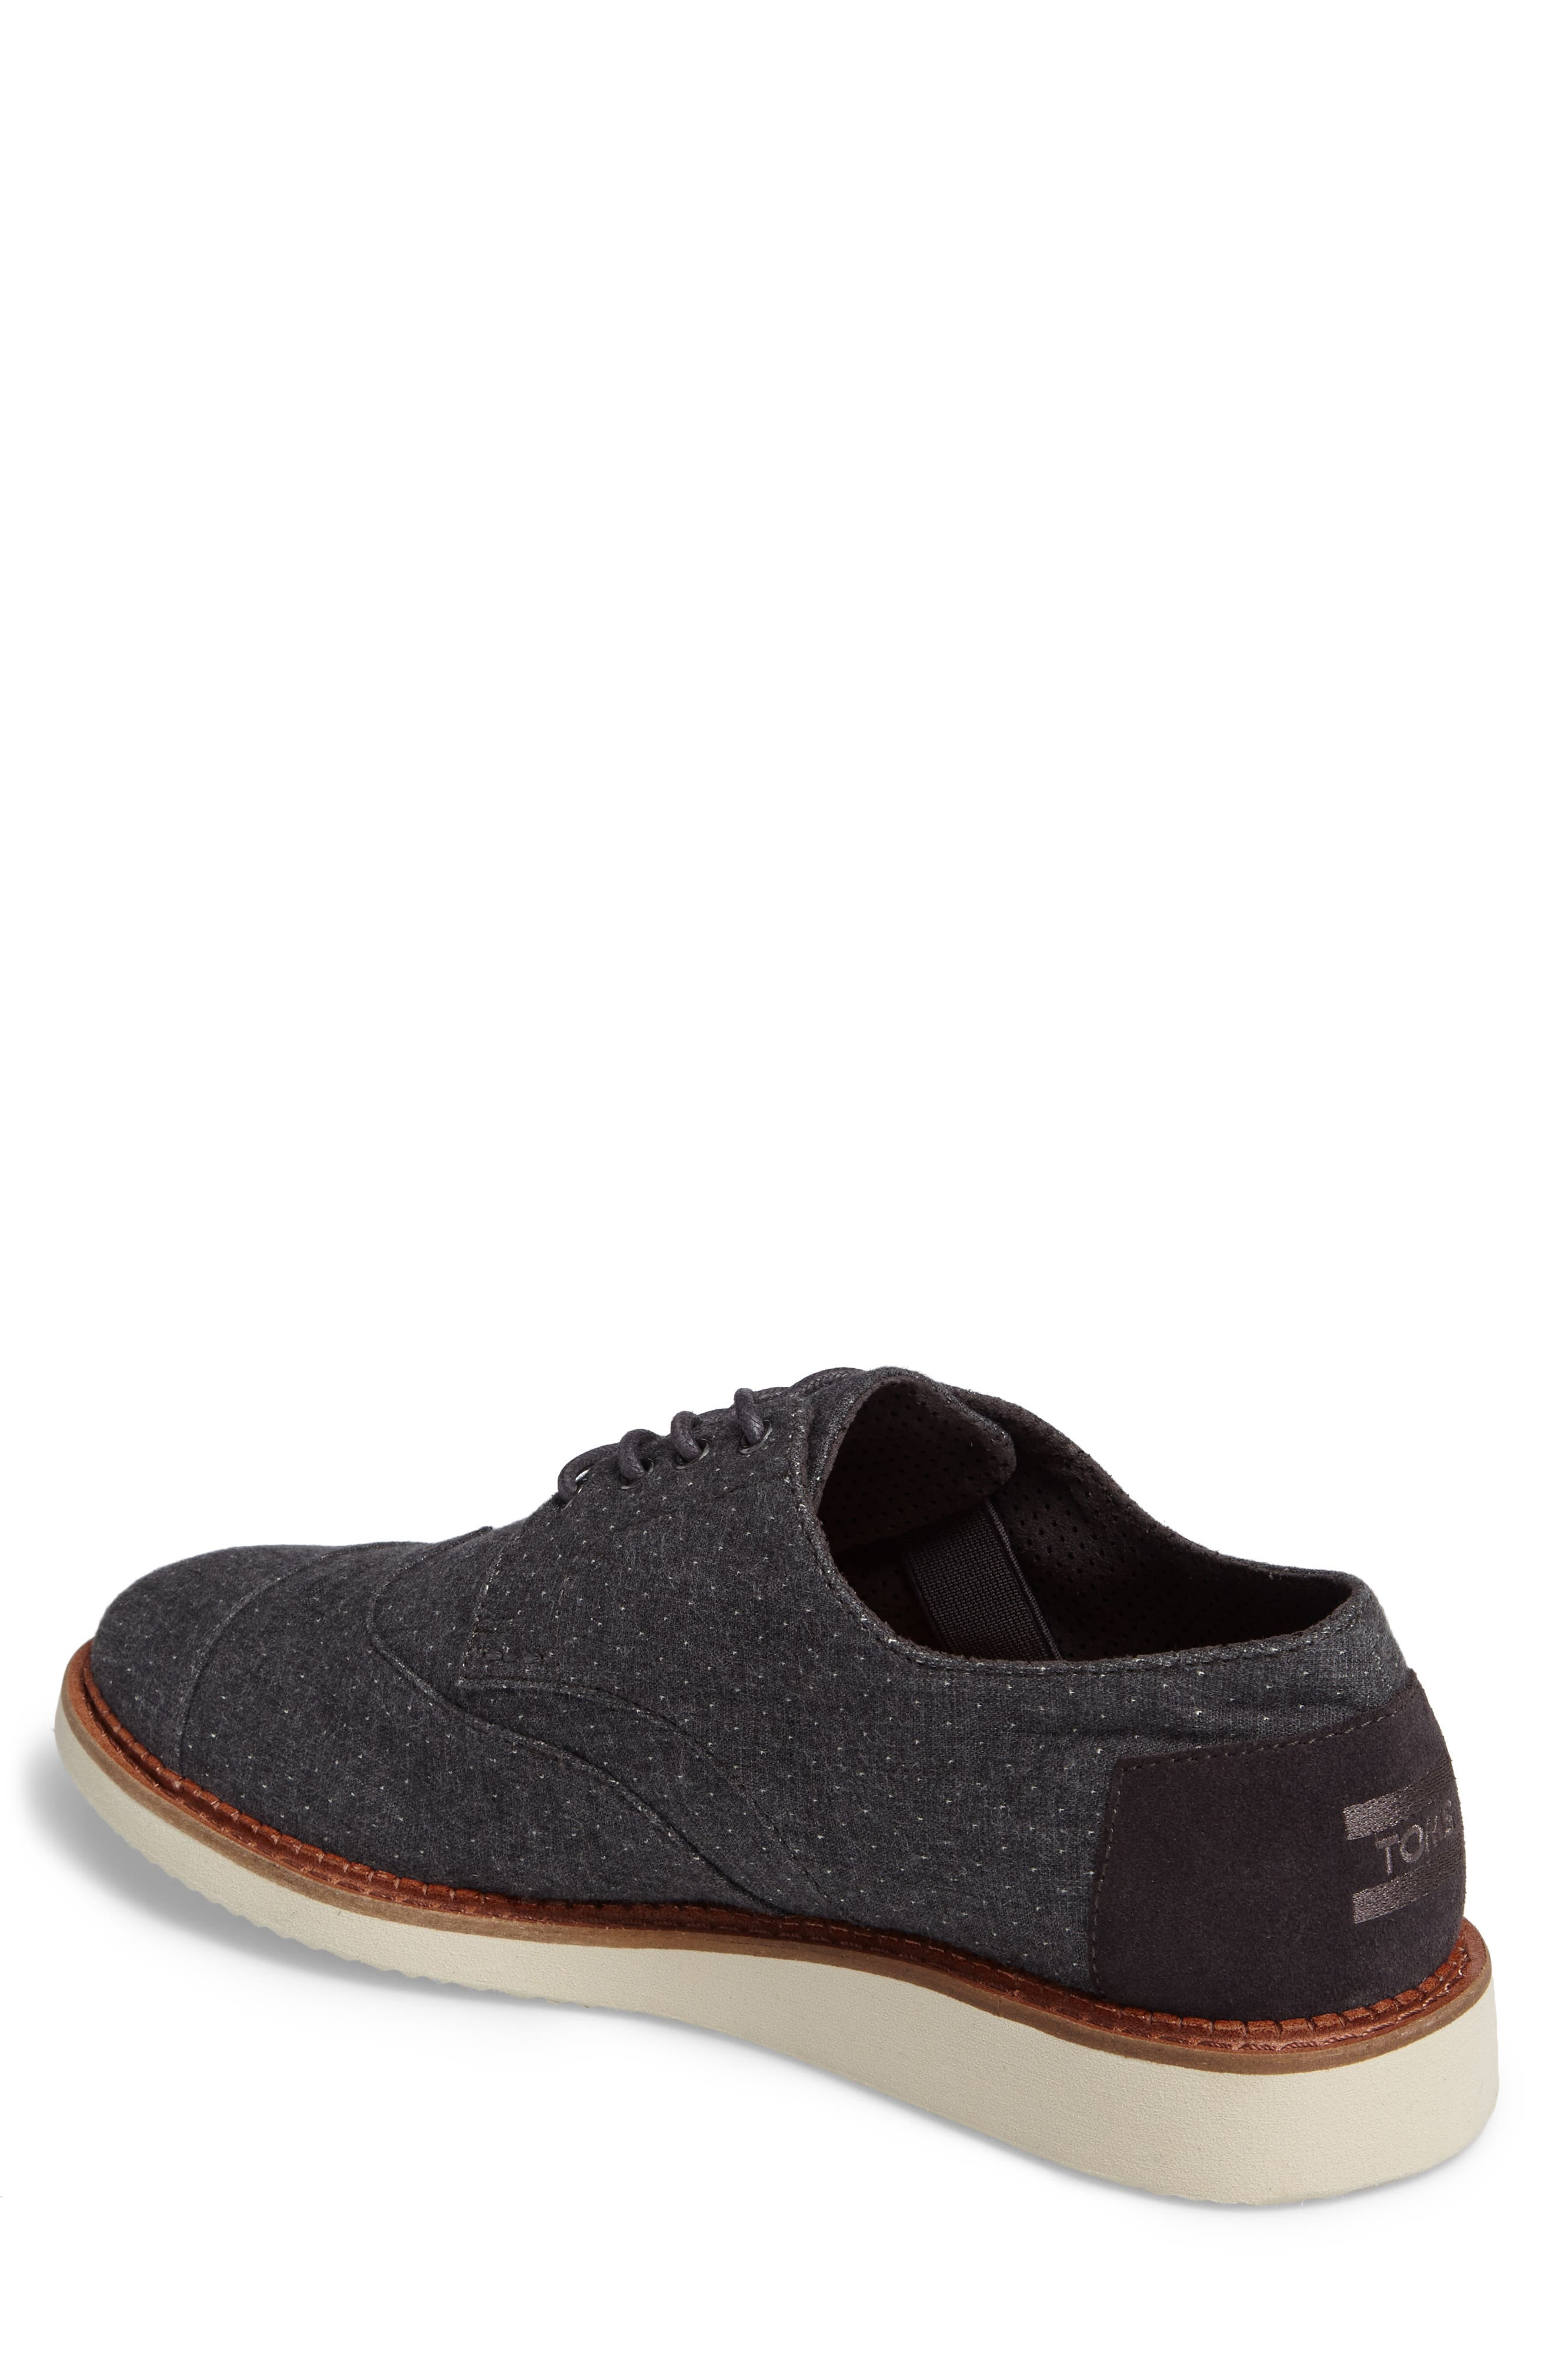 'Classic Brogue' Cotton Twill Derby,                             Alternate thumbnail 22, color,